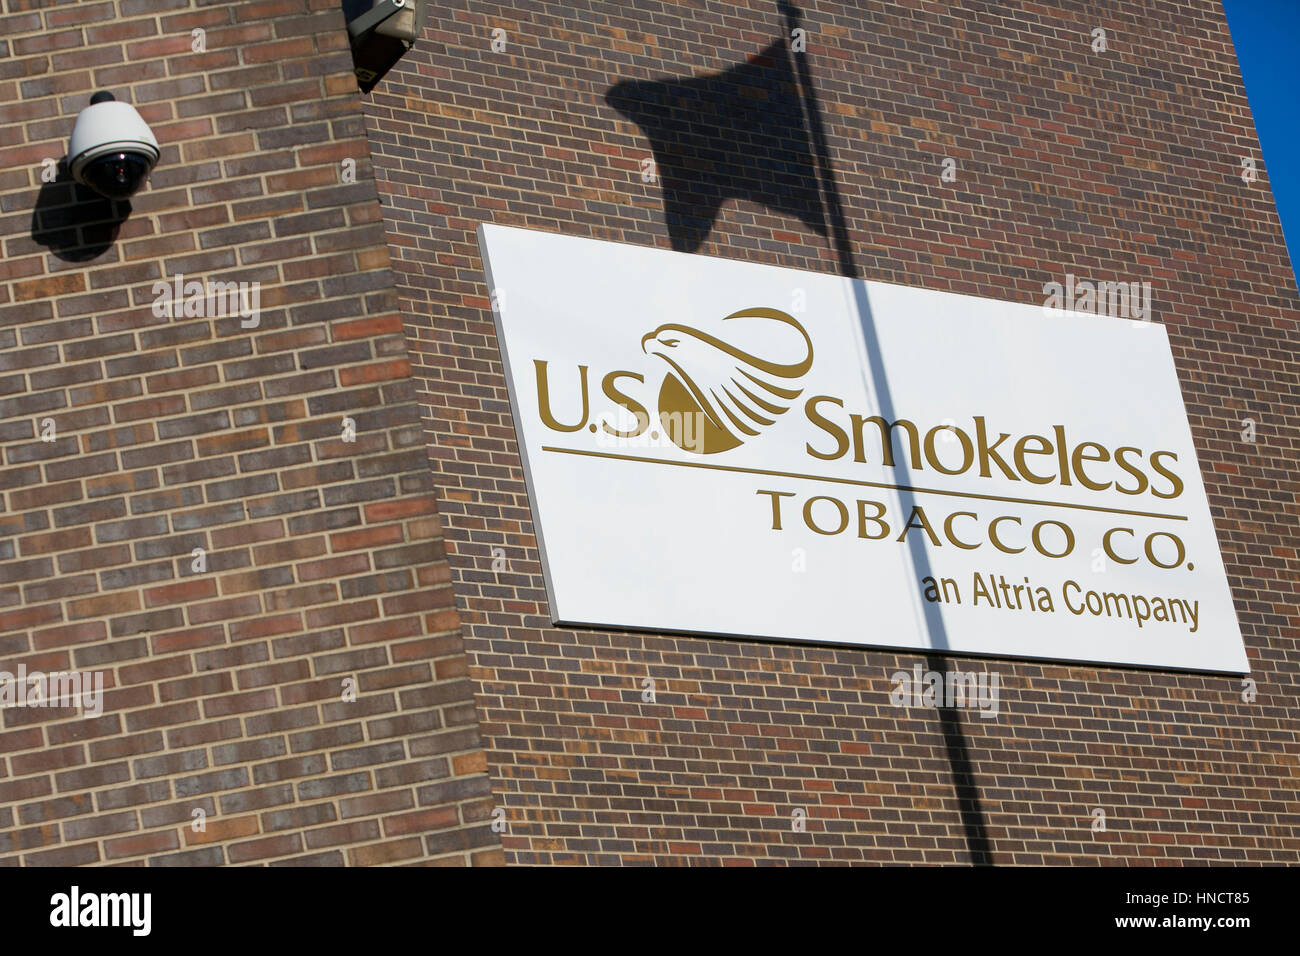 A logo sign outside of a facility occupied by the U.S. Smokeless Tobacco Company in Nashville, Tennessee on February - Stock Image